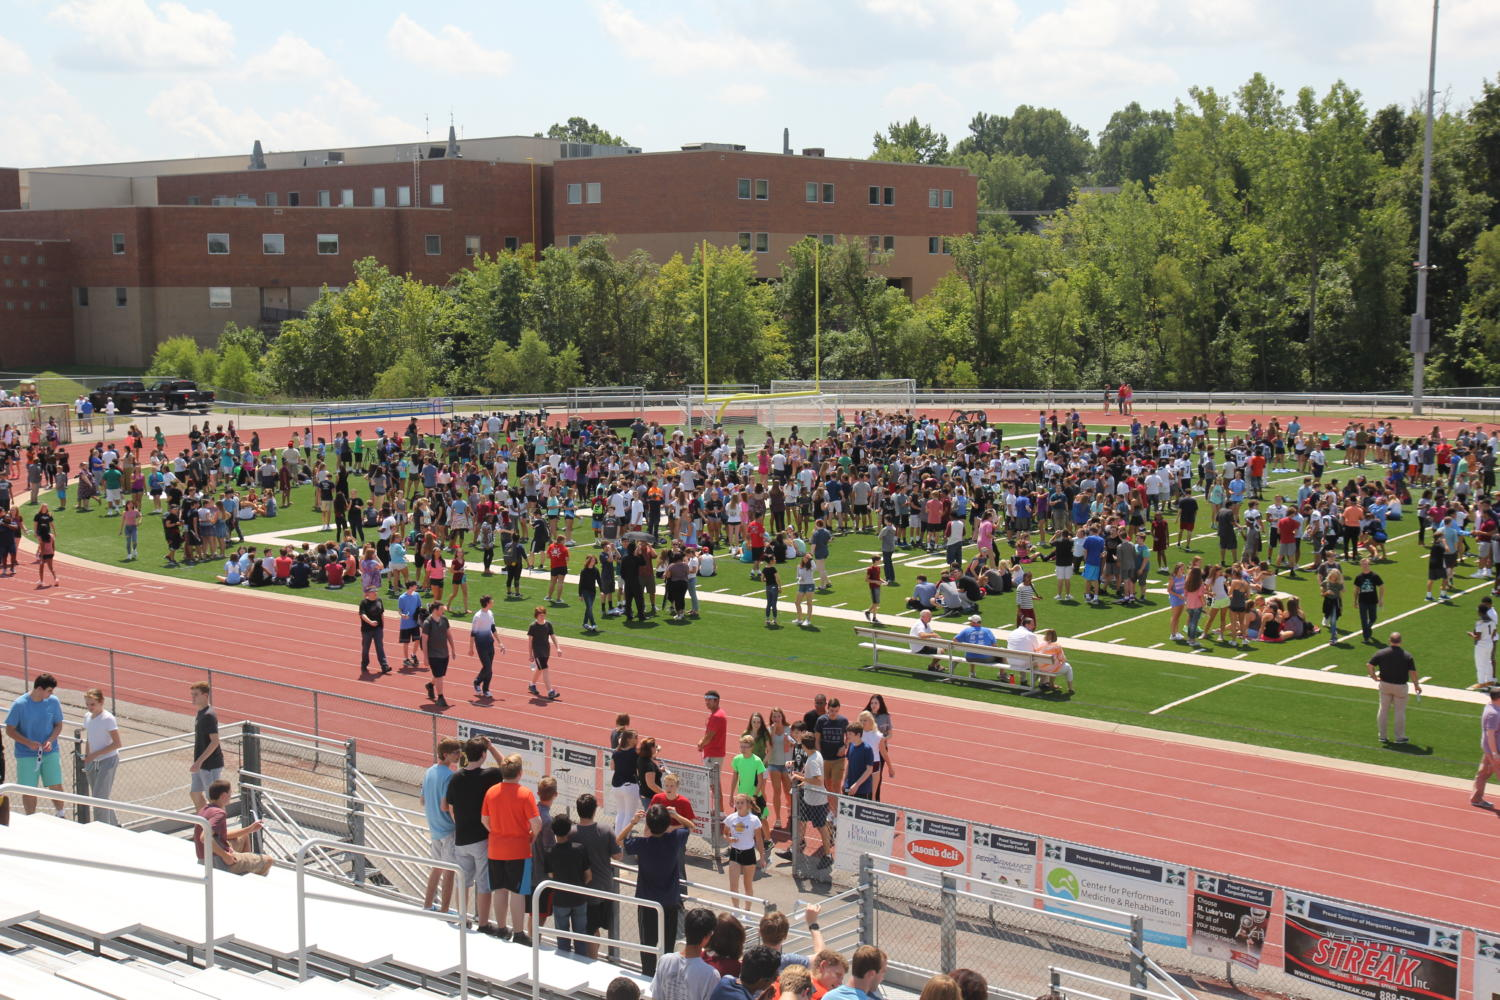 Students+wait+patiently+in+the+sports+field+for+the+the+total+eclipse.+Over+1%2C800+students+crowded+the+field+Tuesday+afternoon.